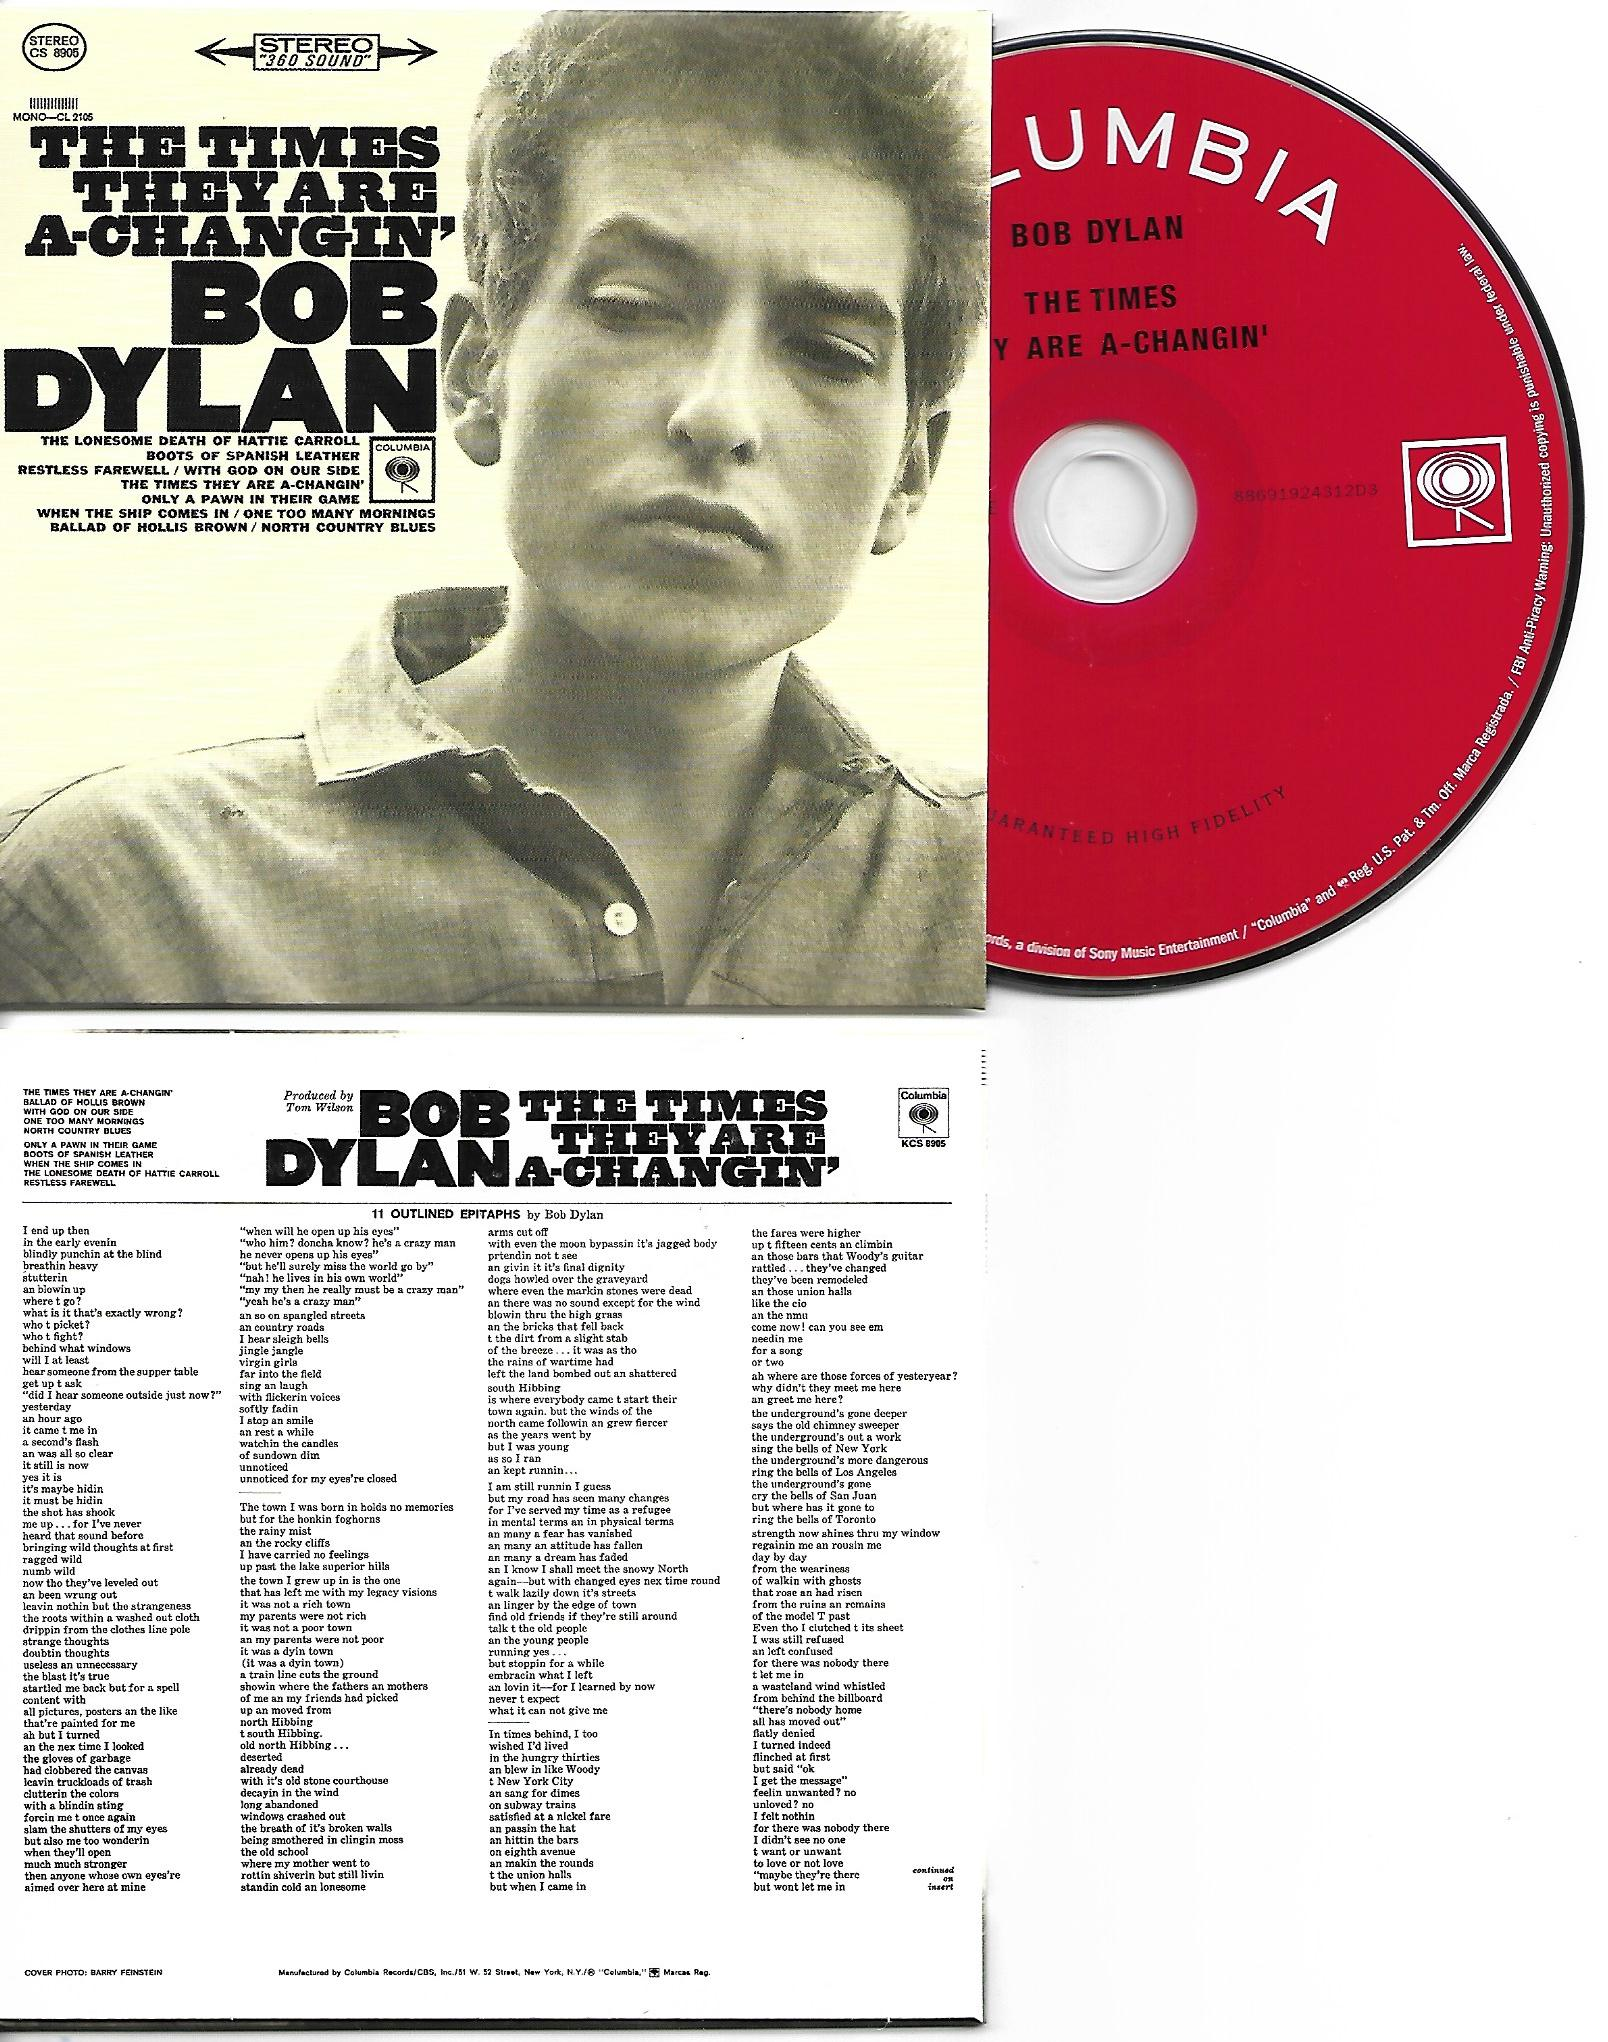 BOB DYLAN - The Times They Are a-Changin' 1964 - MINI LP REPLICA CARD BOARD SLEEVE - CD